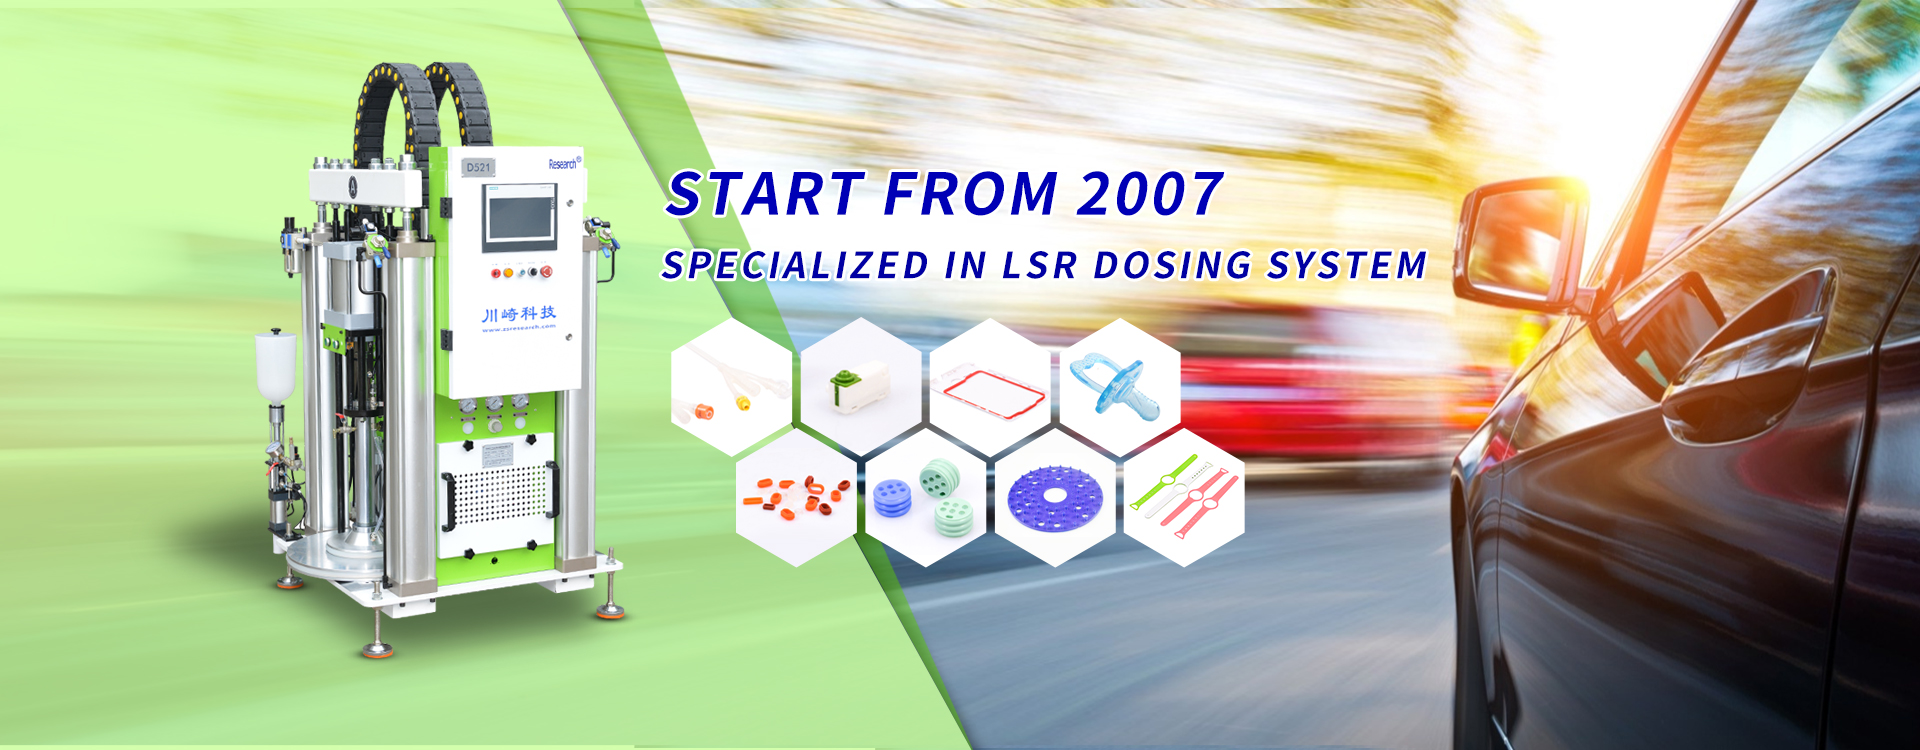 START FROM 2007 SPECIAIZED IN LSR DOSING SYSTEM